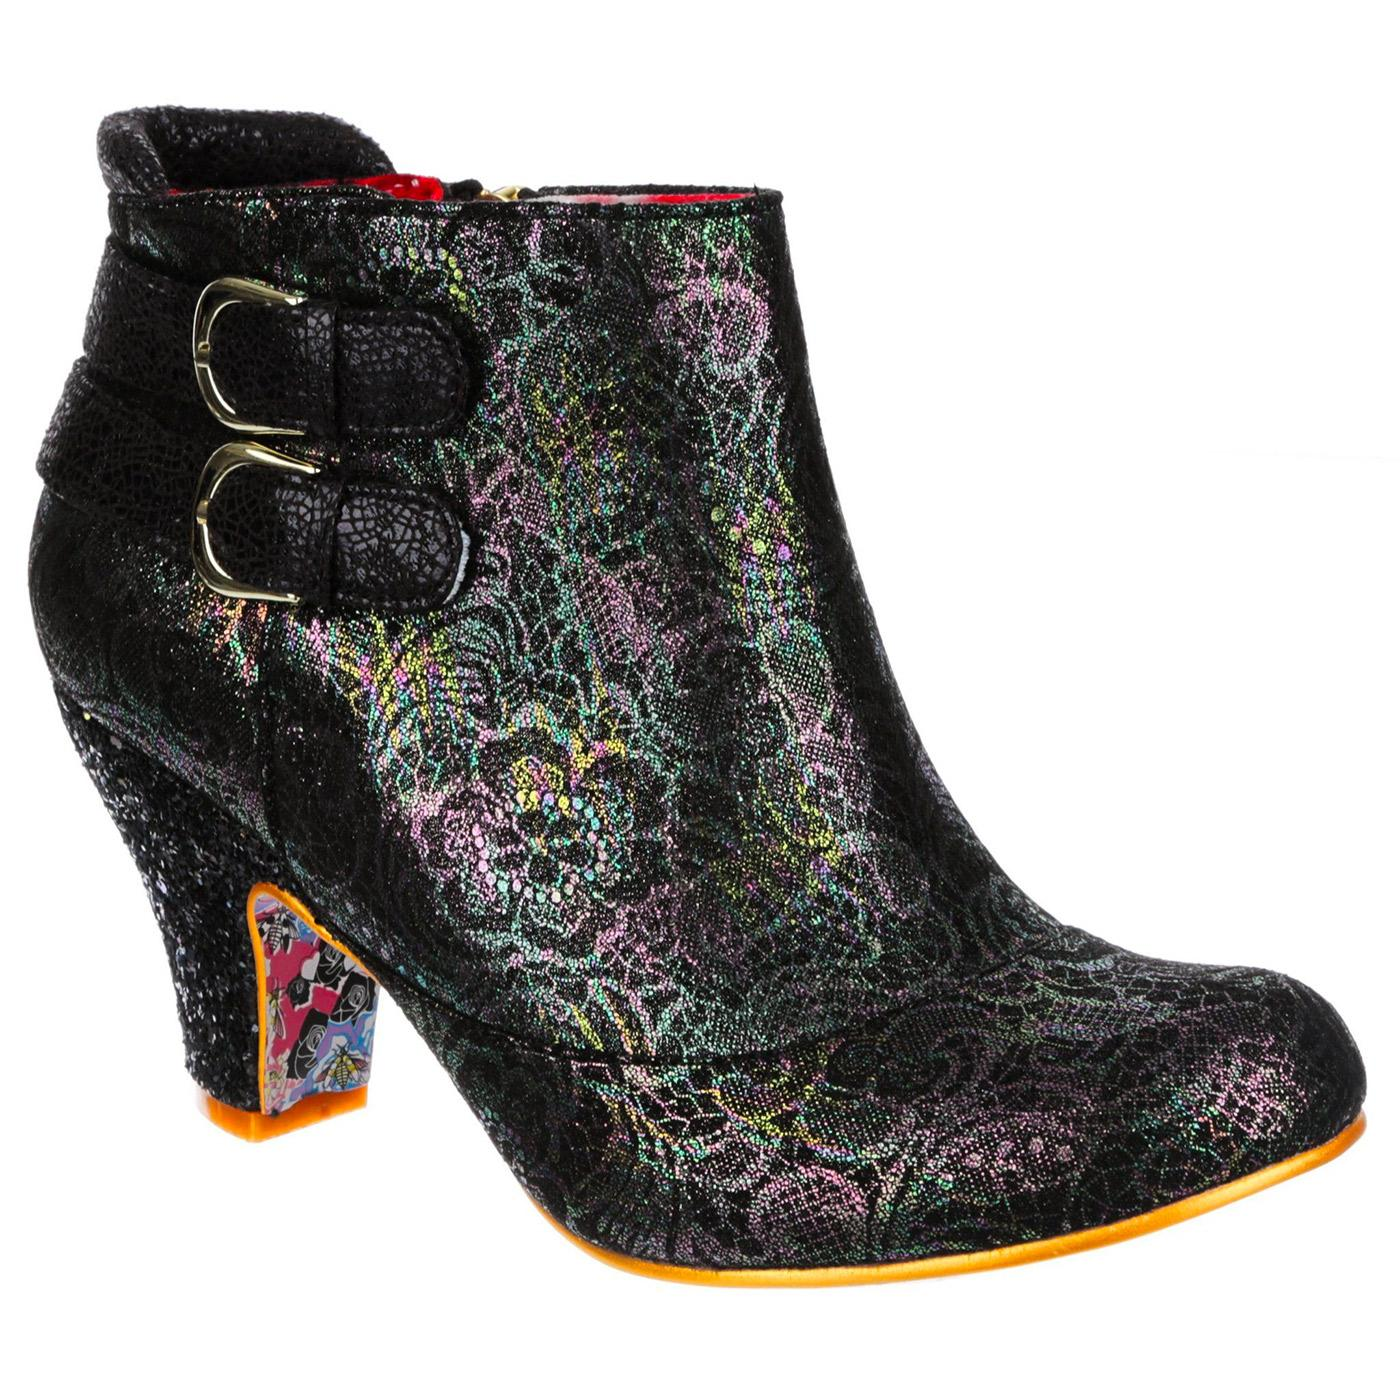 Think About It IRREGULAR CHOICE Floral Heel Boot B